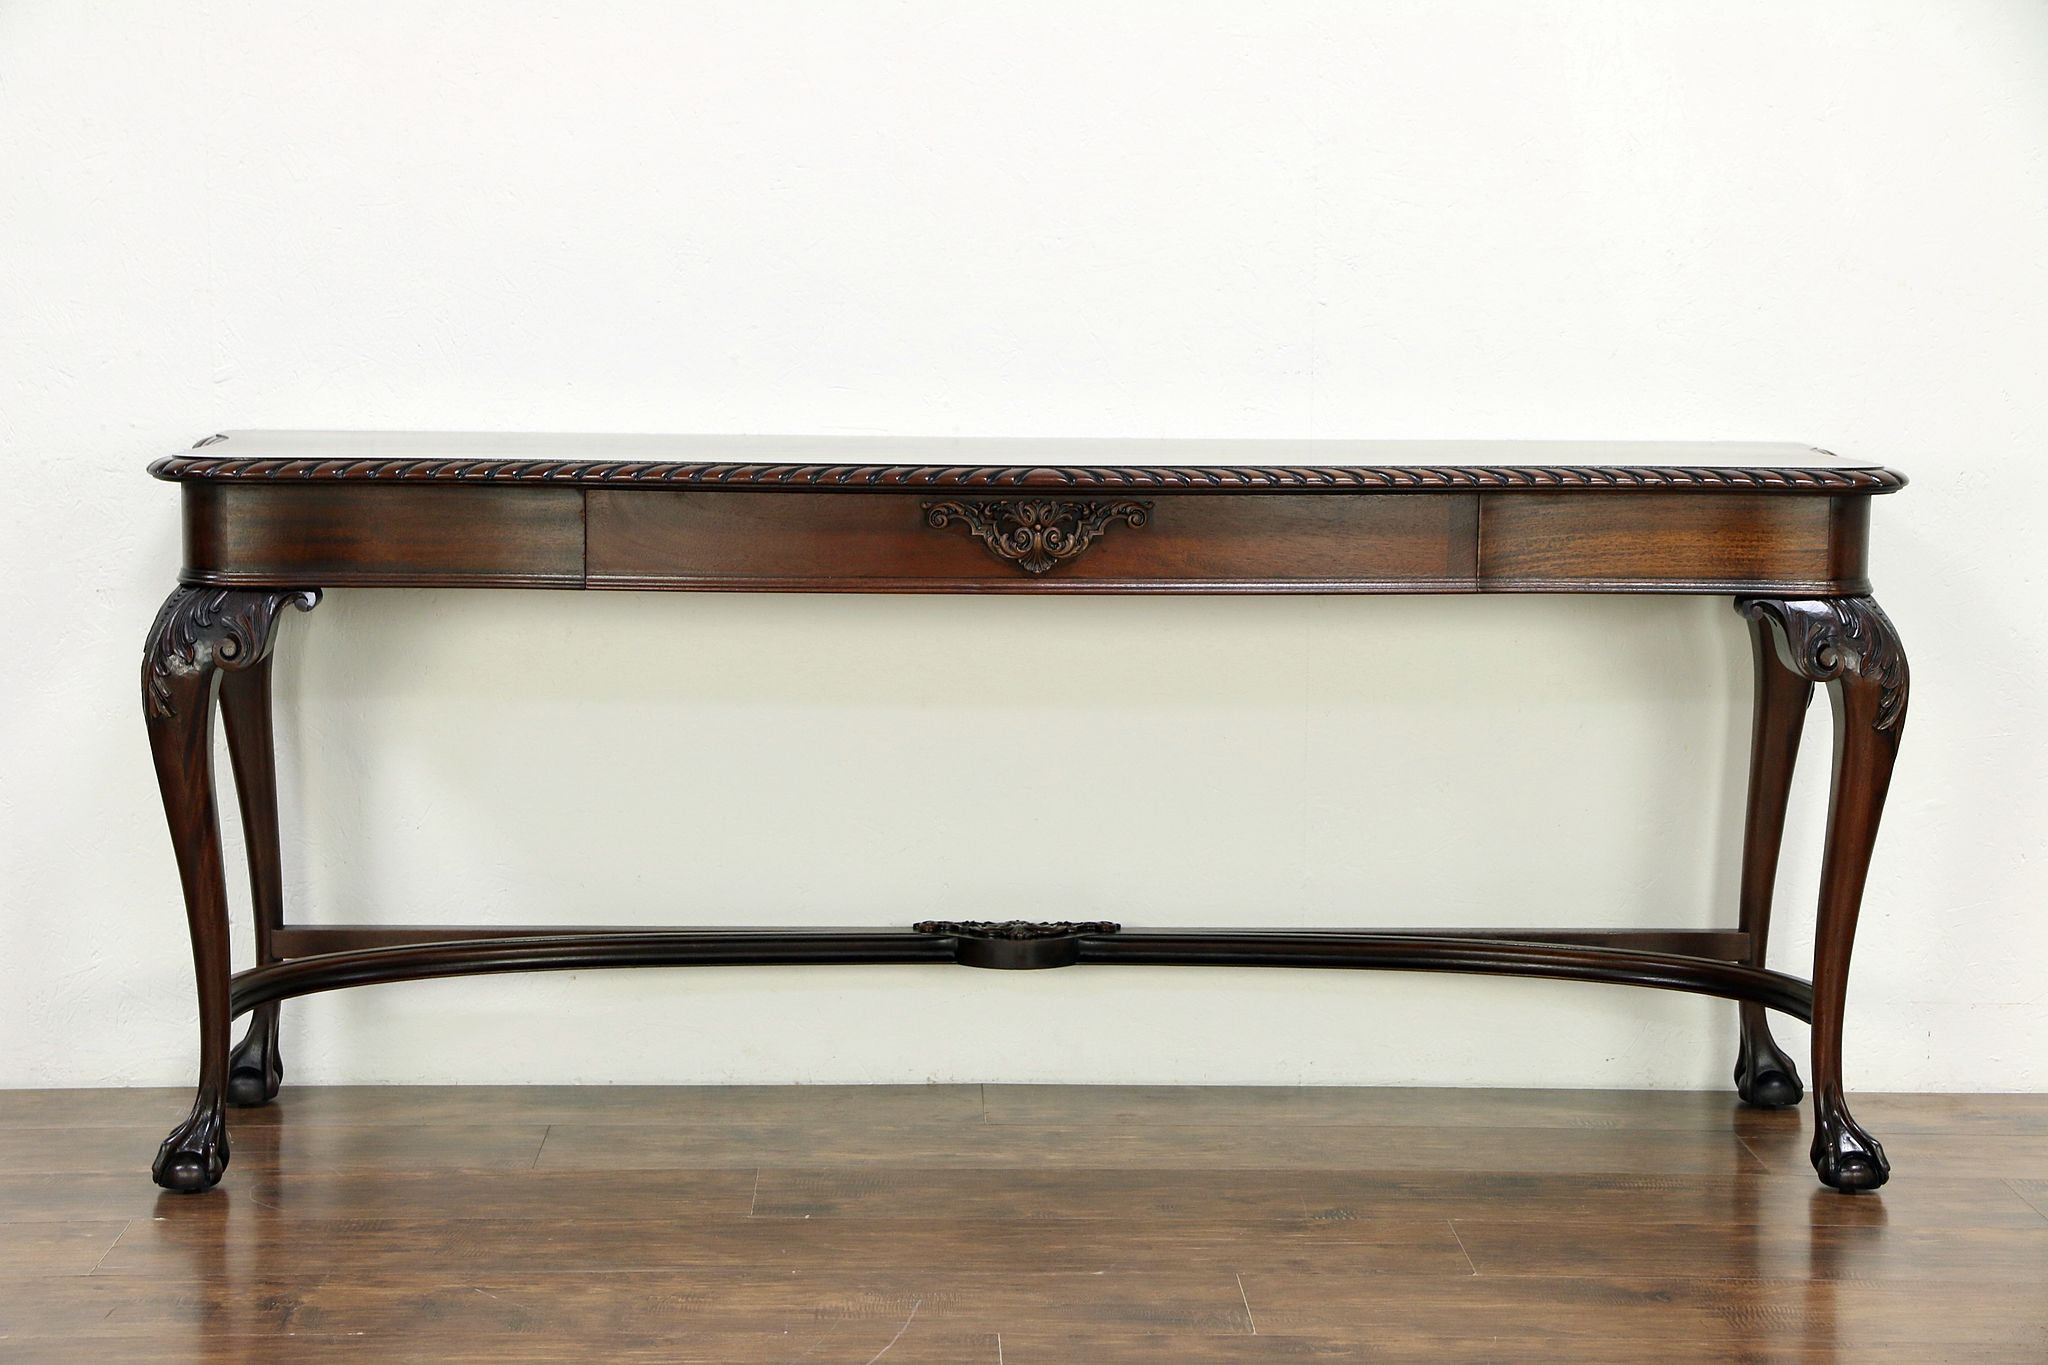 Wondrous Georgian Mahogany Antique Hall Console Or Sofa Table Carved Claw Feet 30675 Theyellowbook Wood Chair Design Ideas Theyellowbookinfo